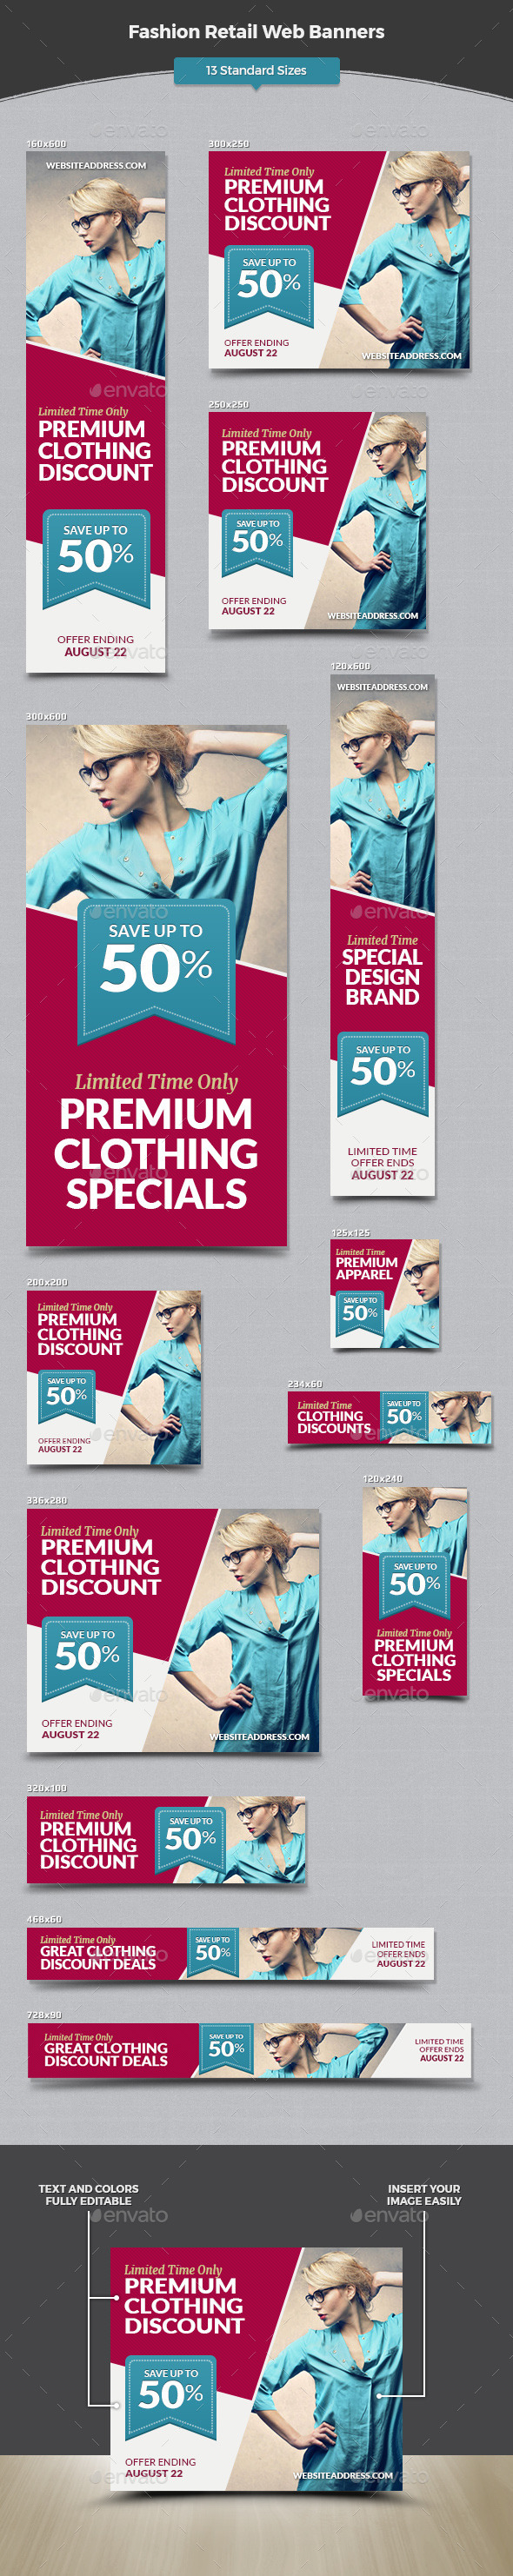 Fashion Retail Web Banners - Banners & Ads Web Elements